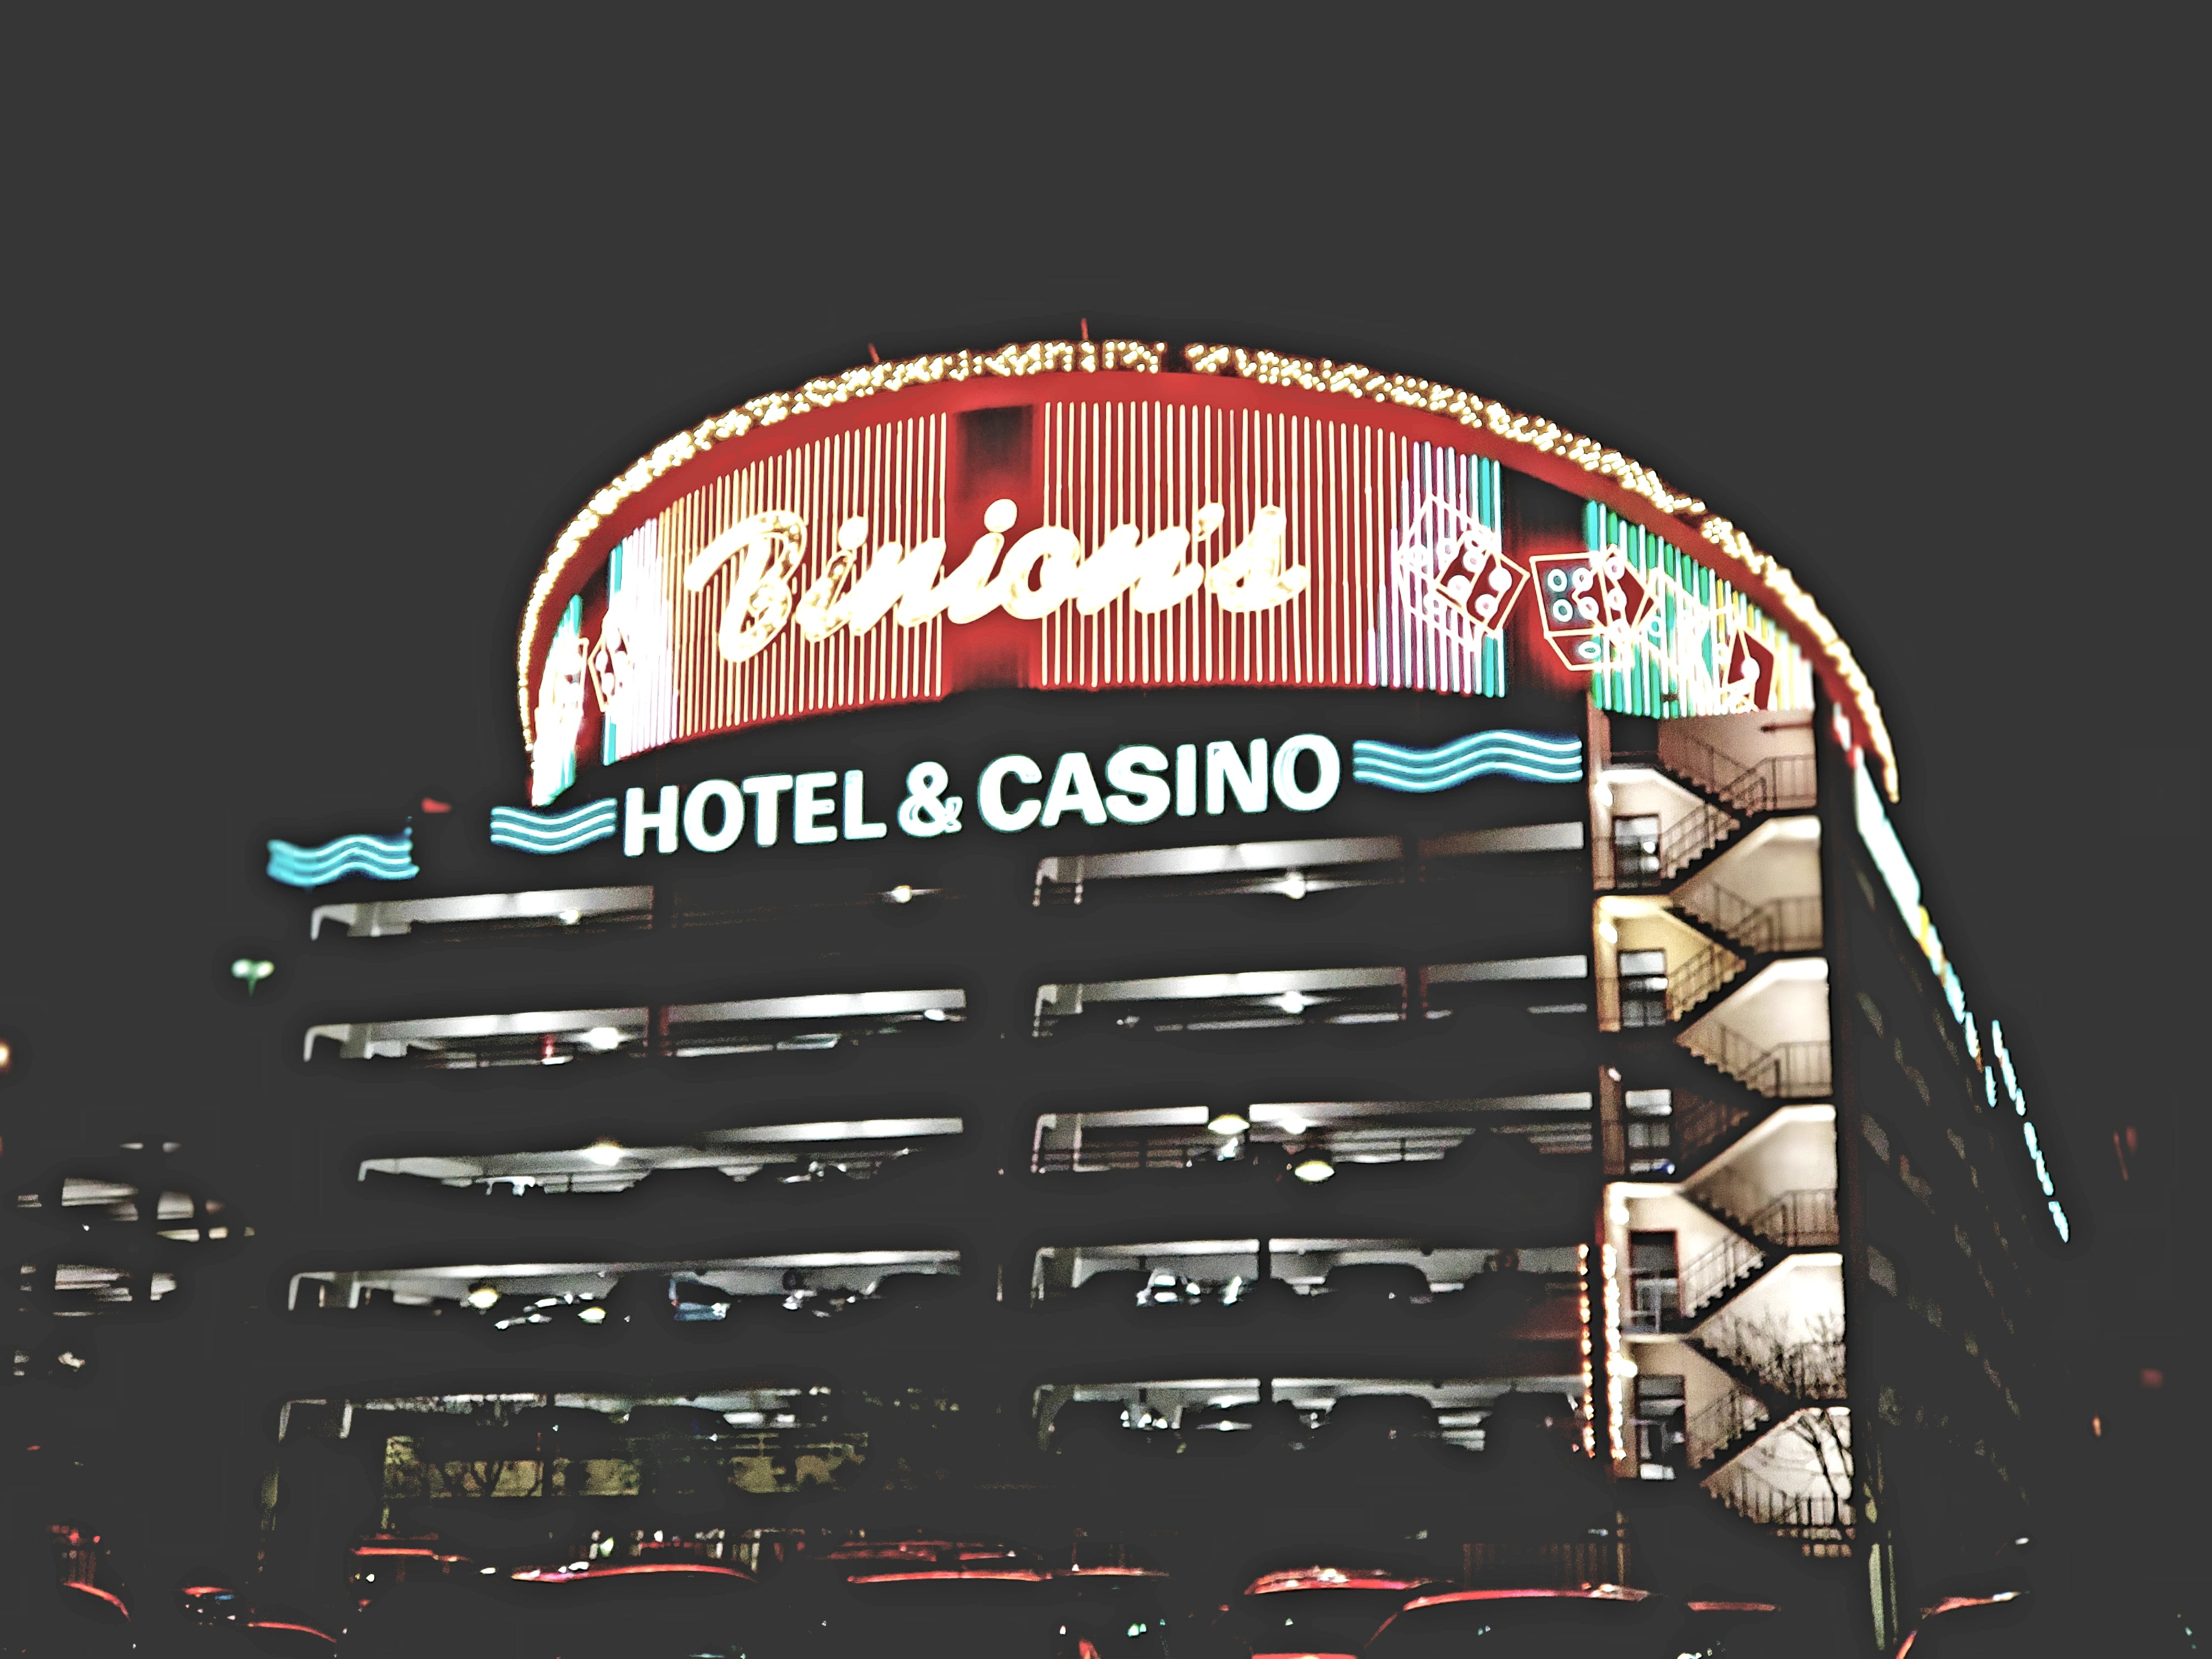 Binion's Hotel & Casino Building